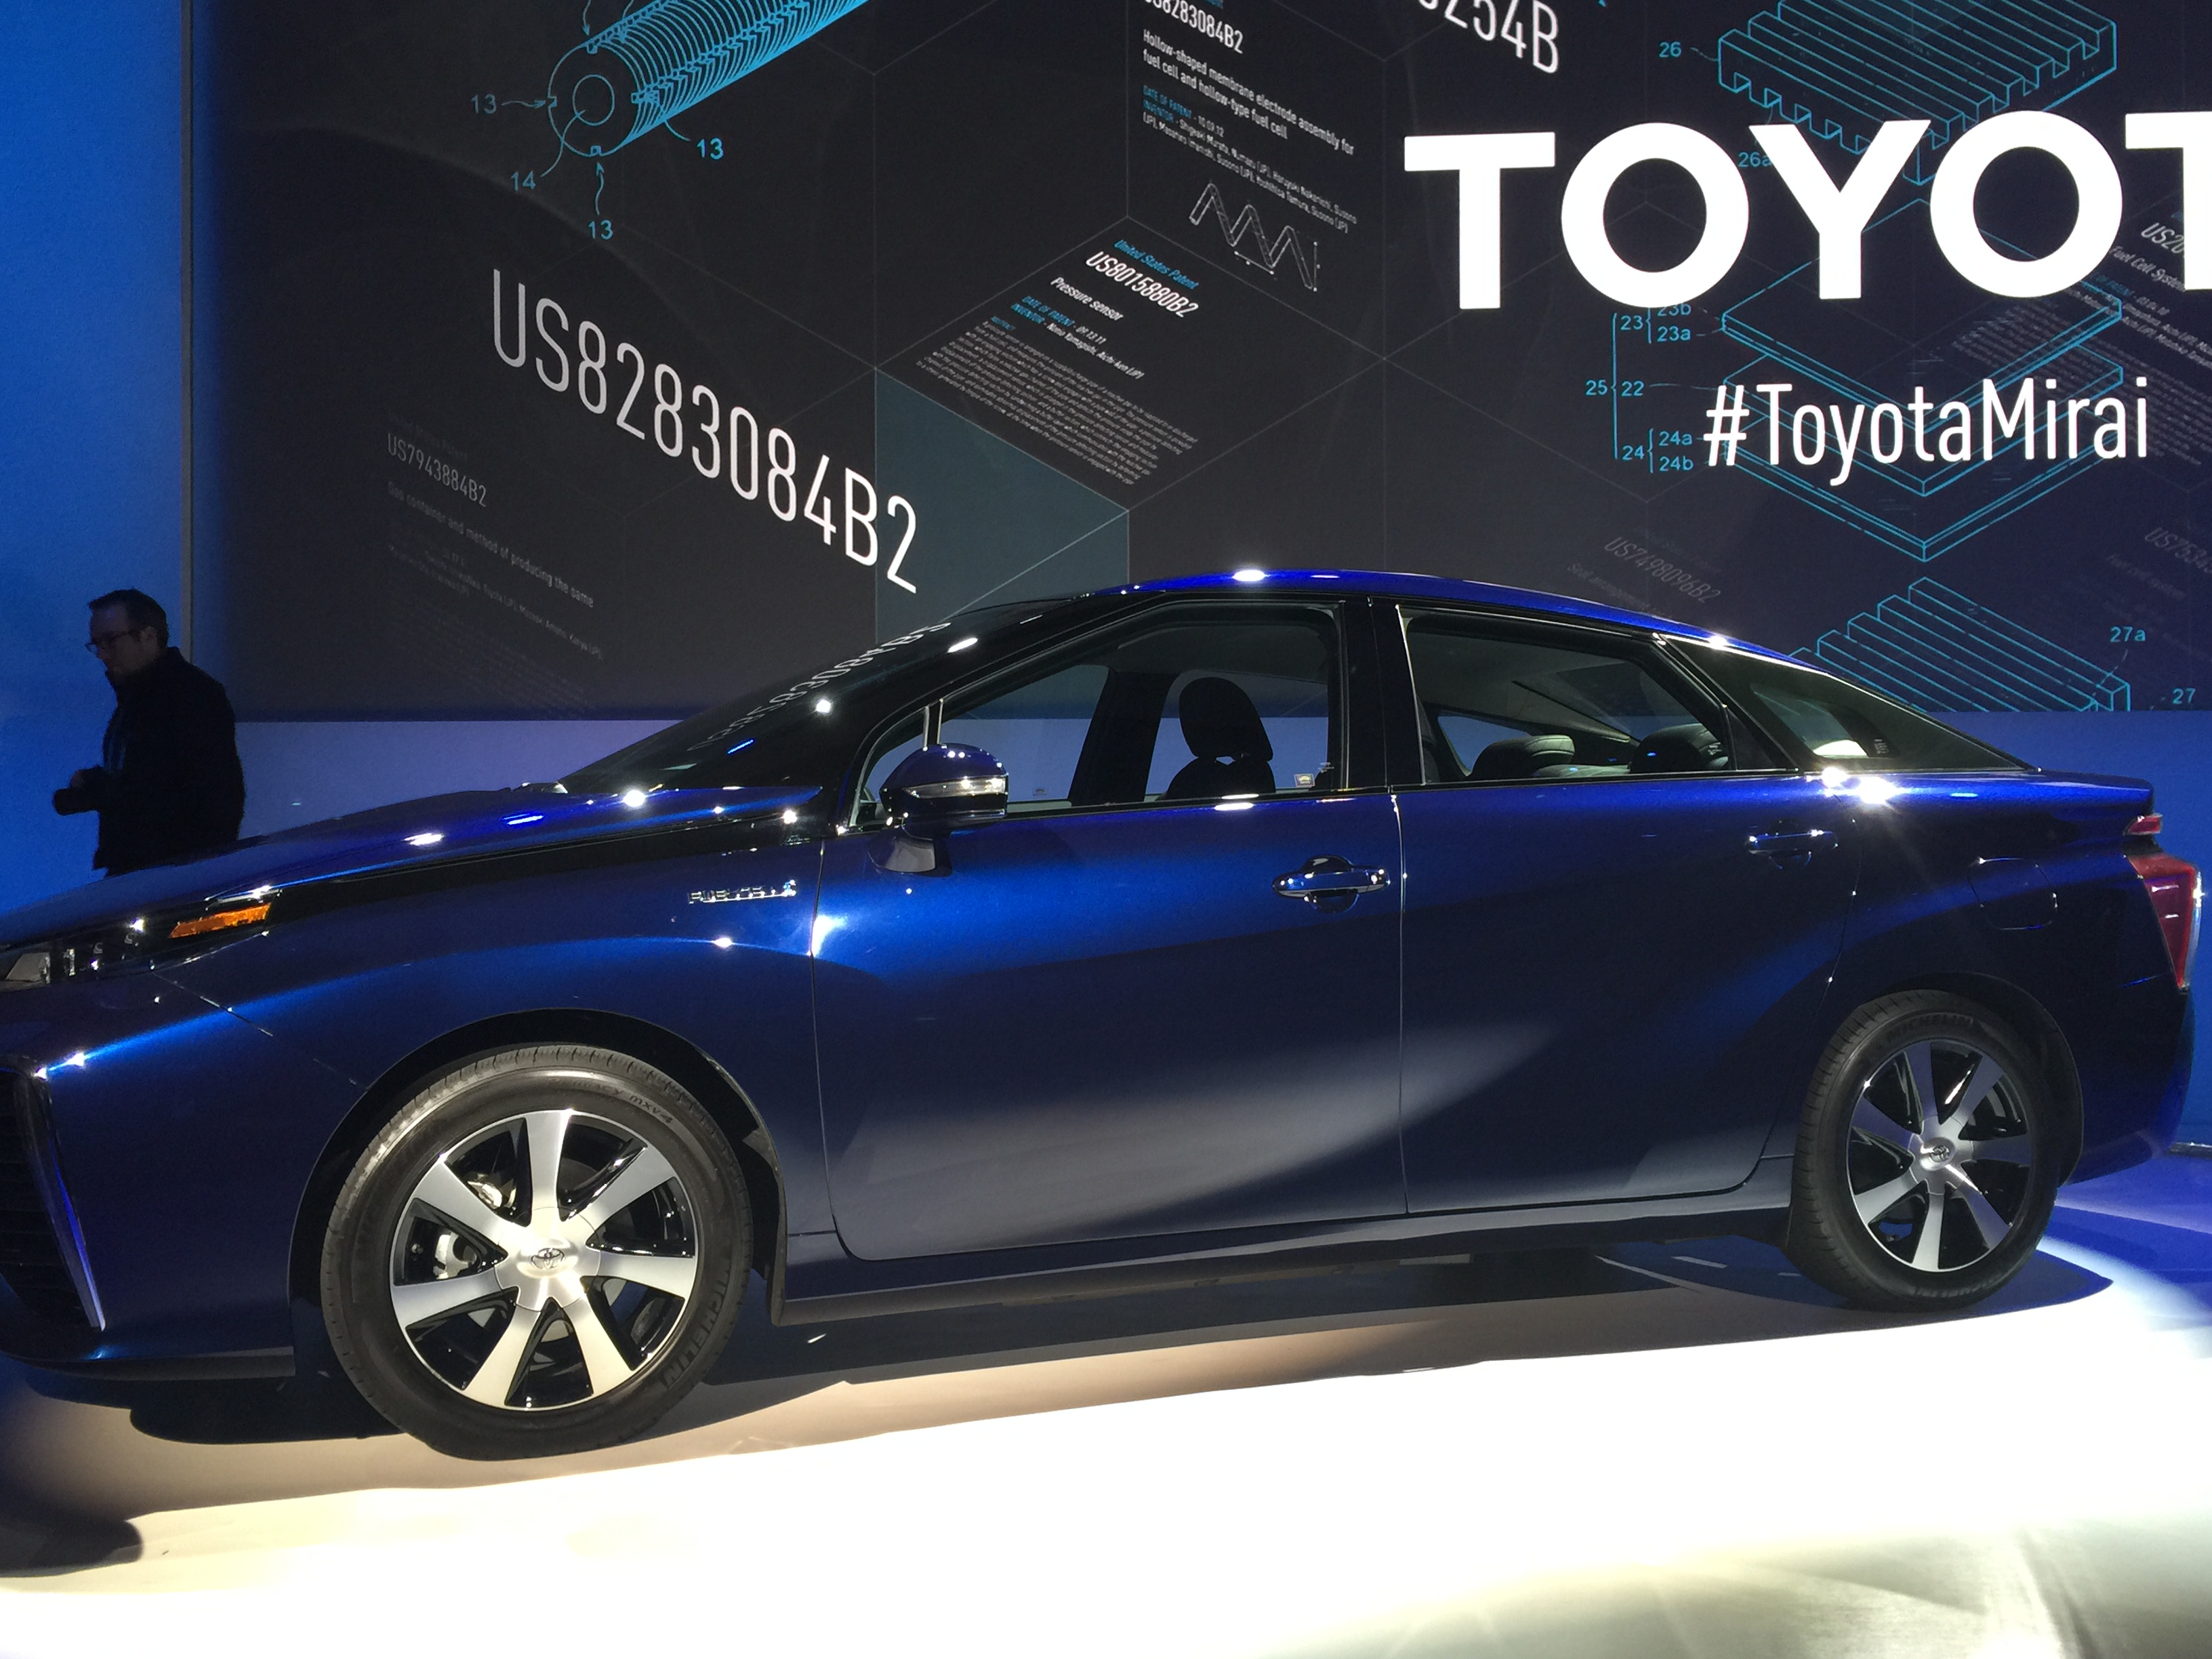 Toyota Plans Commercial Release Of Hydrogen Fueled Mirai This Fall